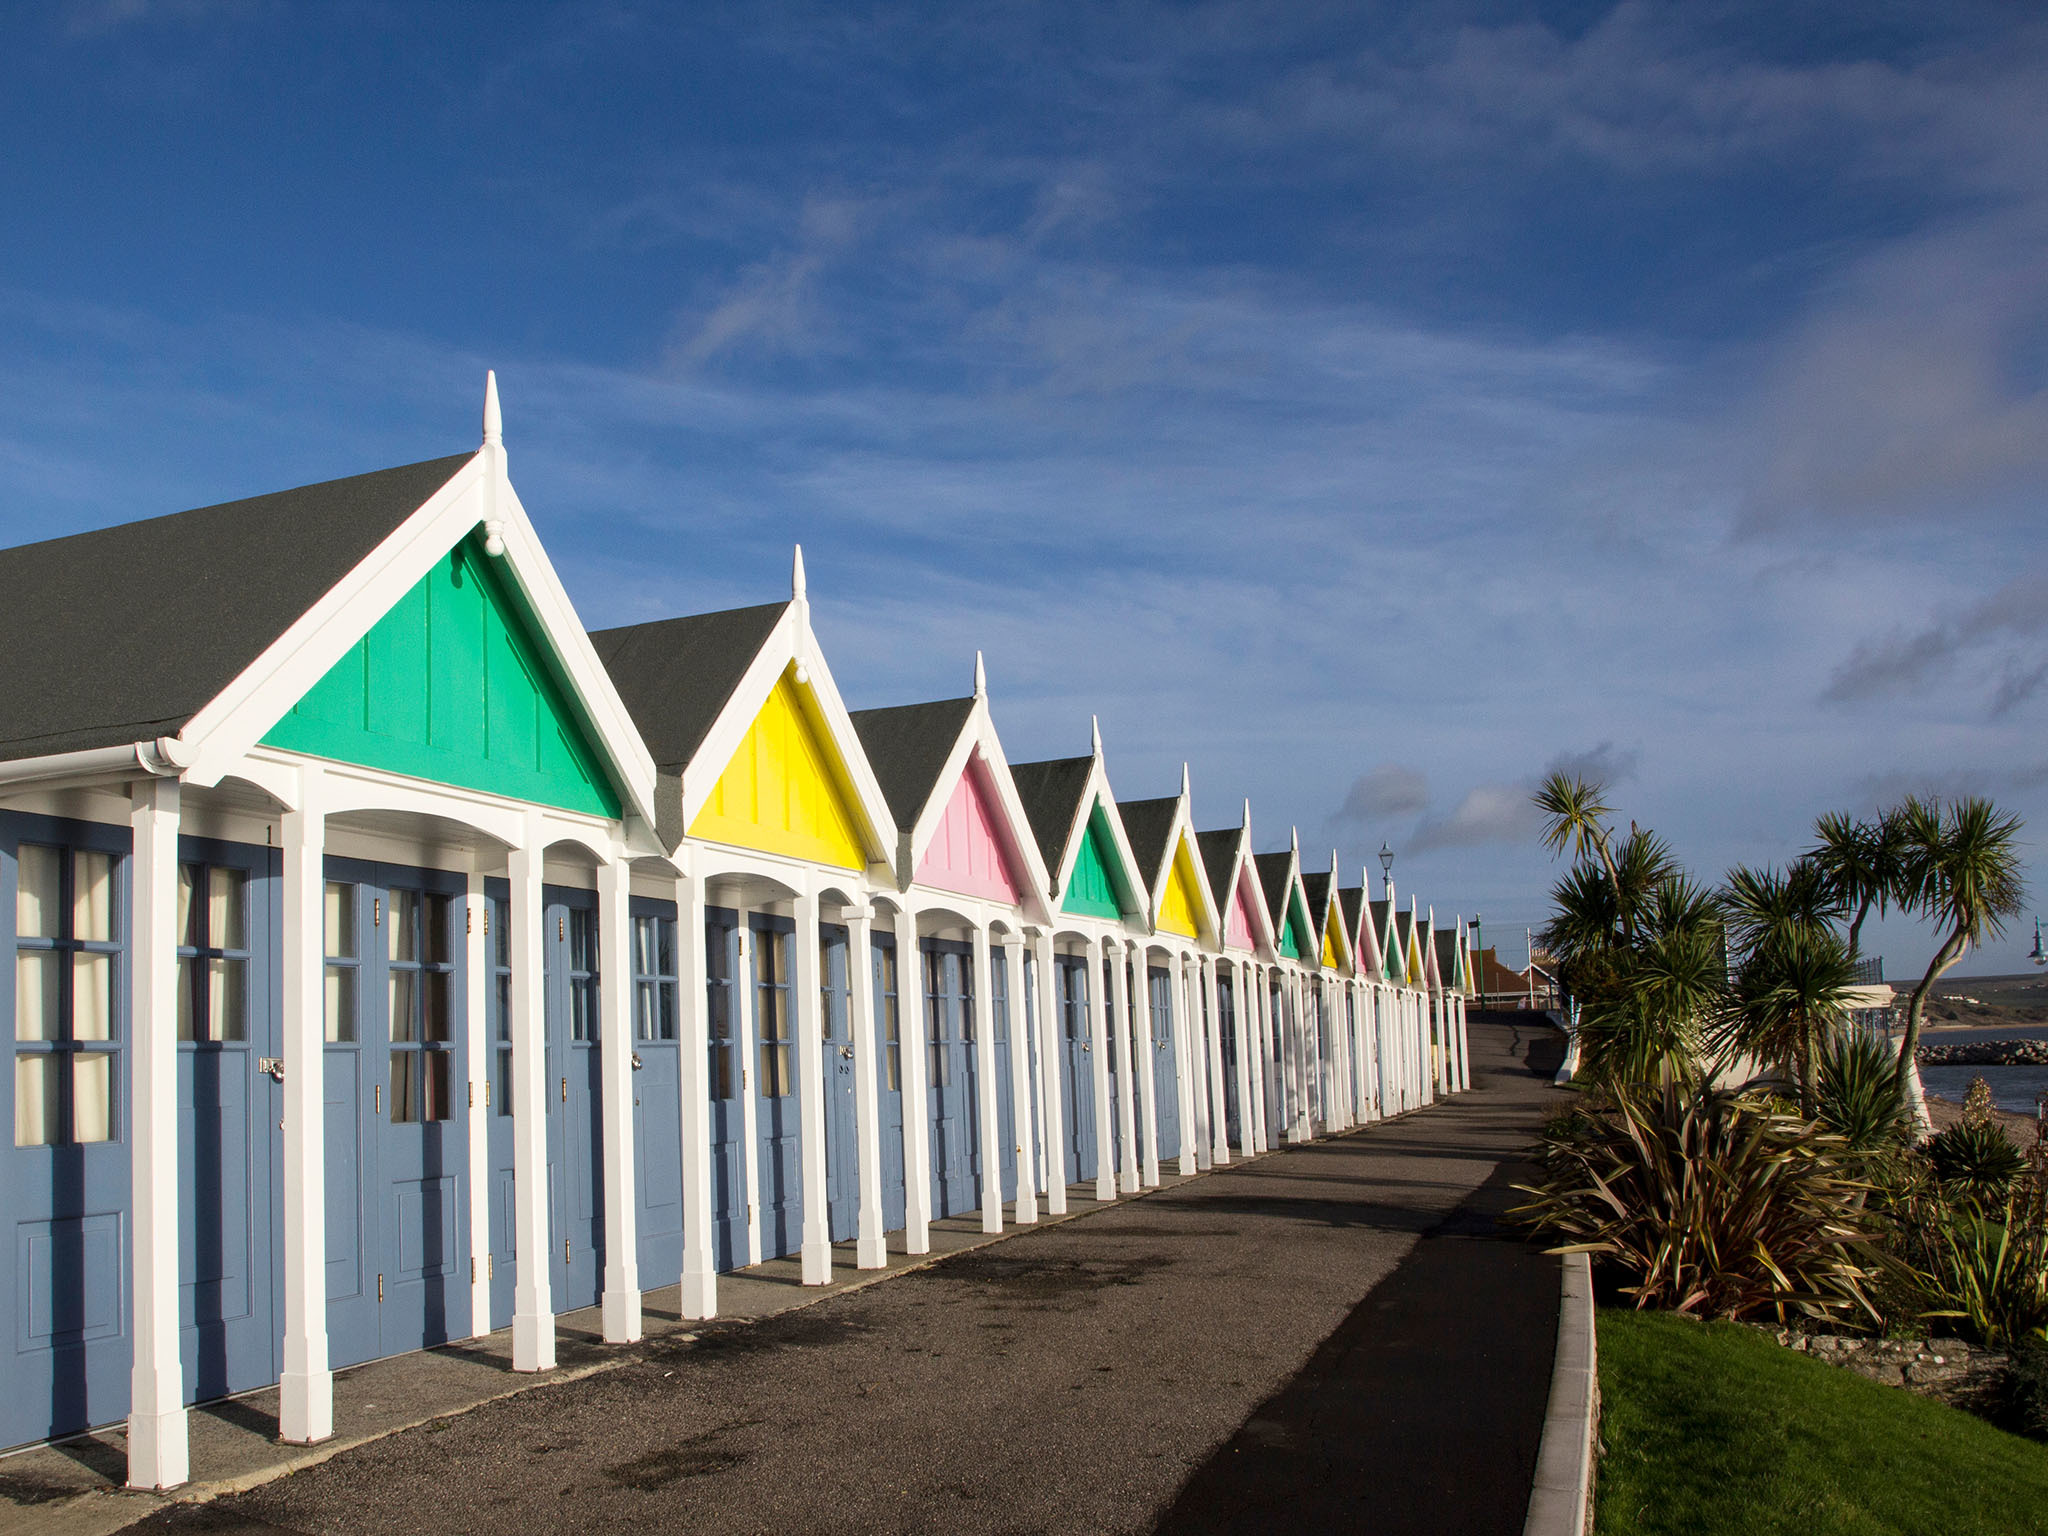 The 10 best things to do in Weymouth